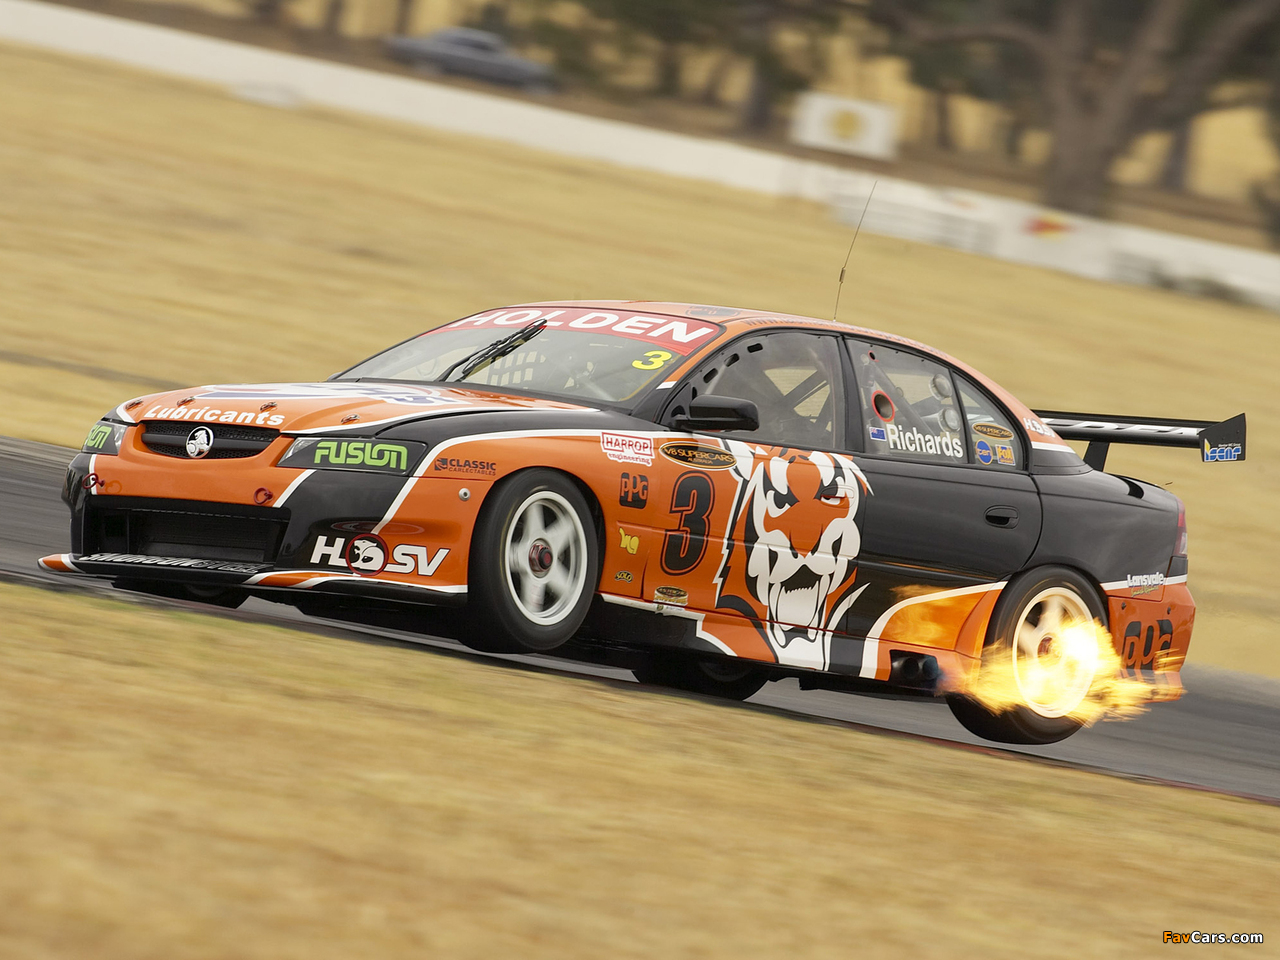 holden vz commodore v8 supercar 2005�06 photos 1280x960